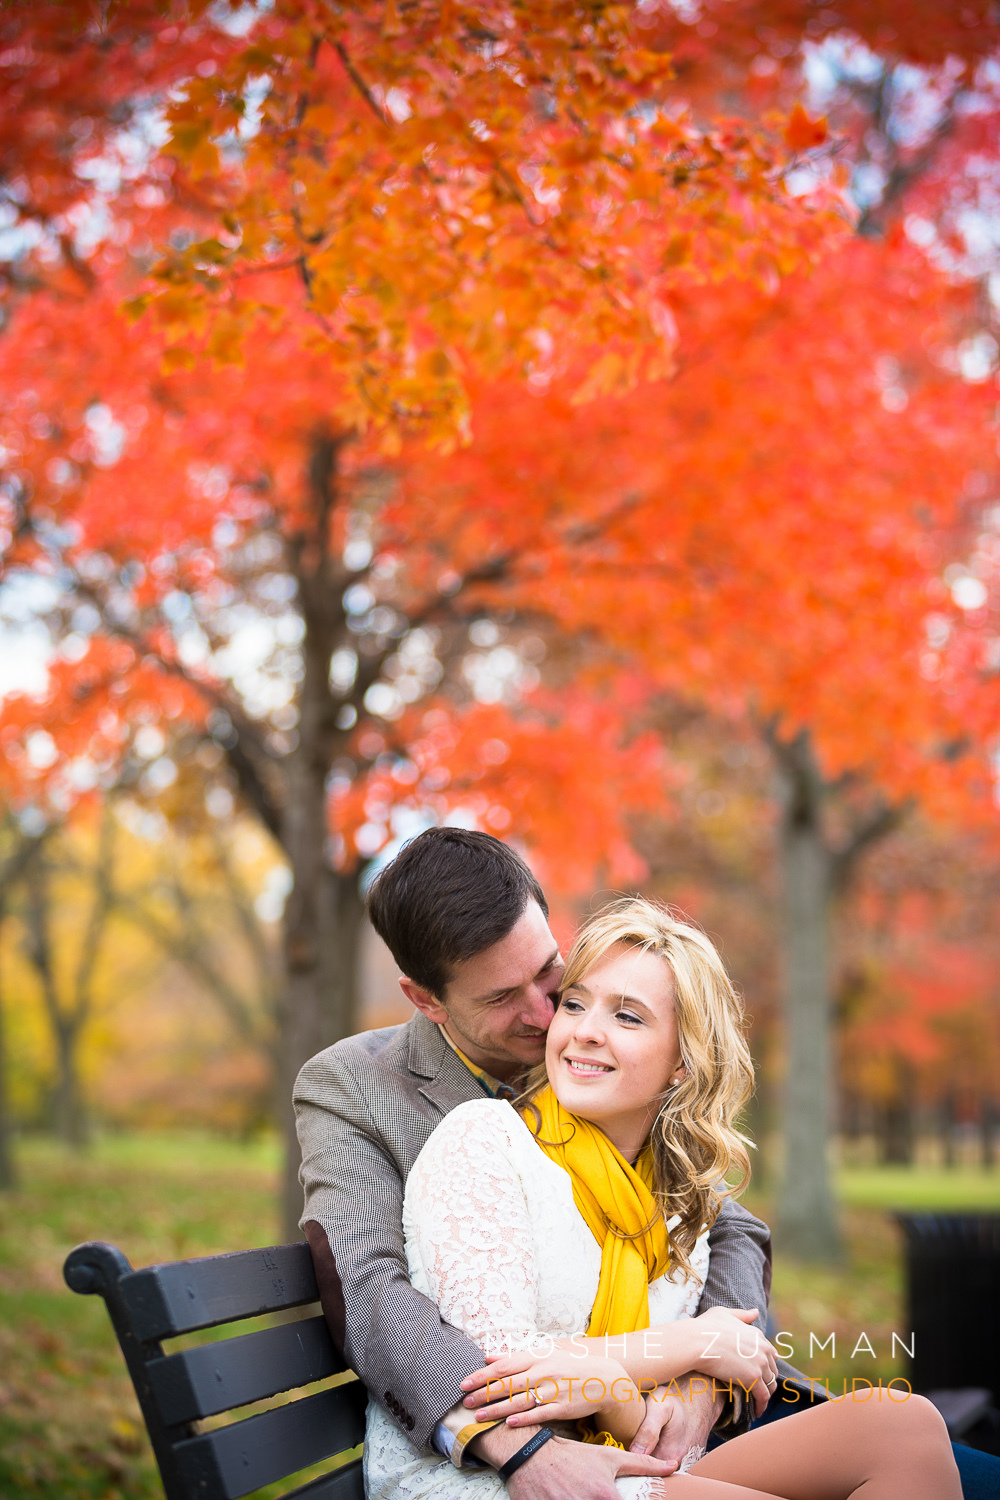 Engagement-Photographer-Washington-DC-Moshe-Zusman-Lauren-and-Tyler-17.jpg